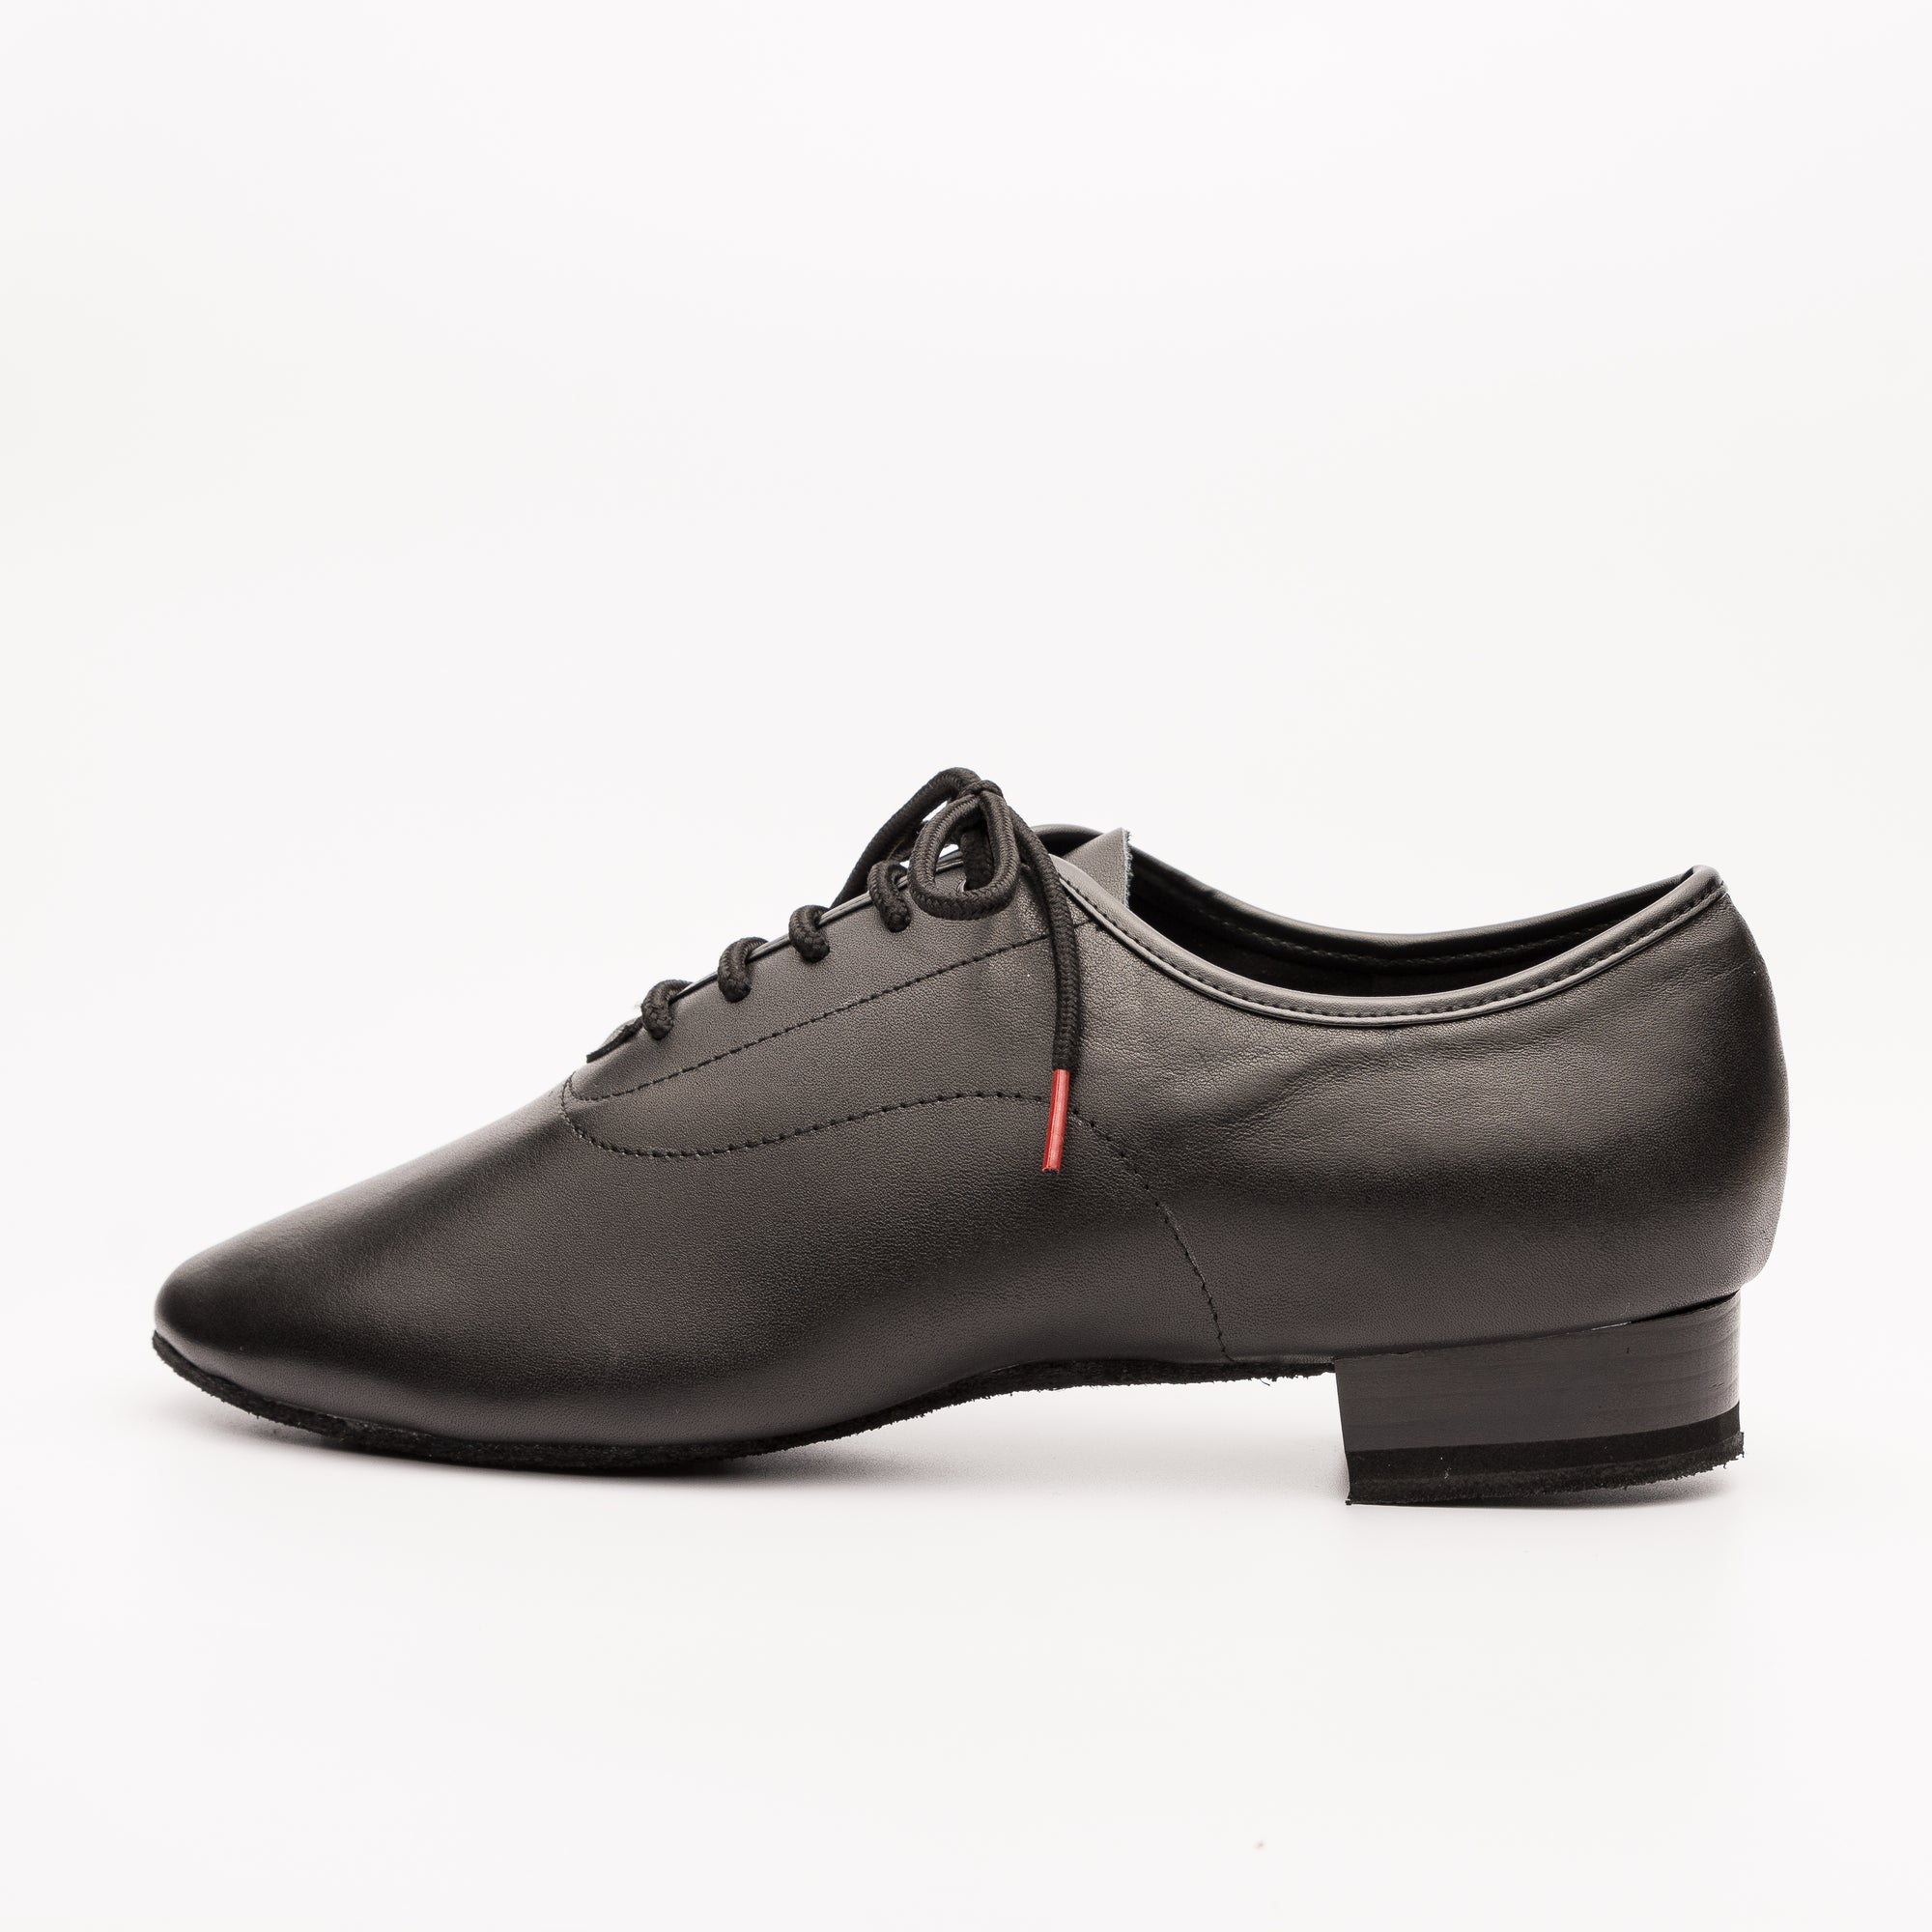 PRO Edition Leather Men's Shoes - Low Heel